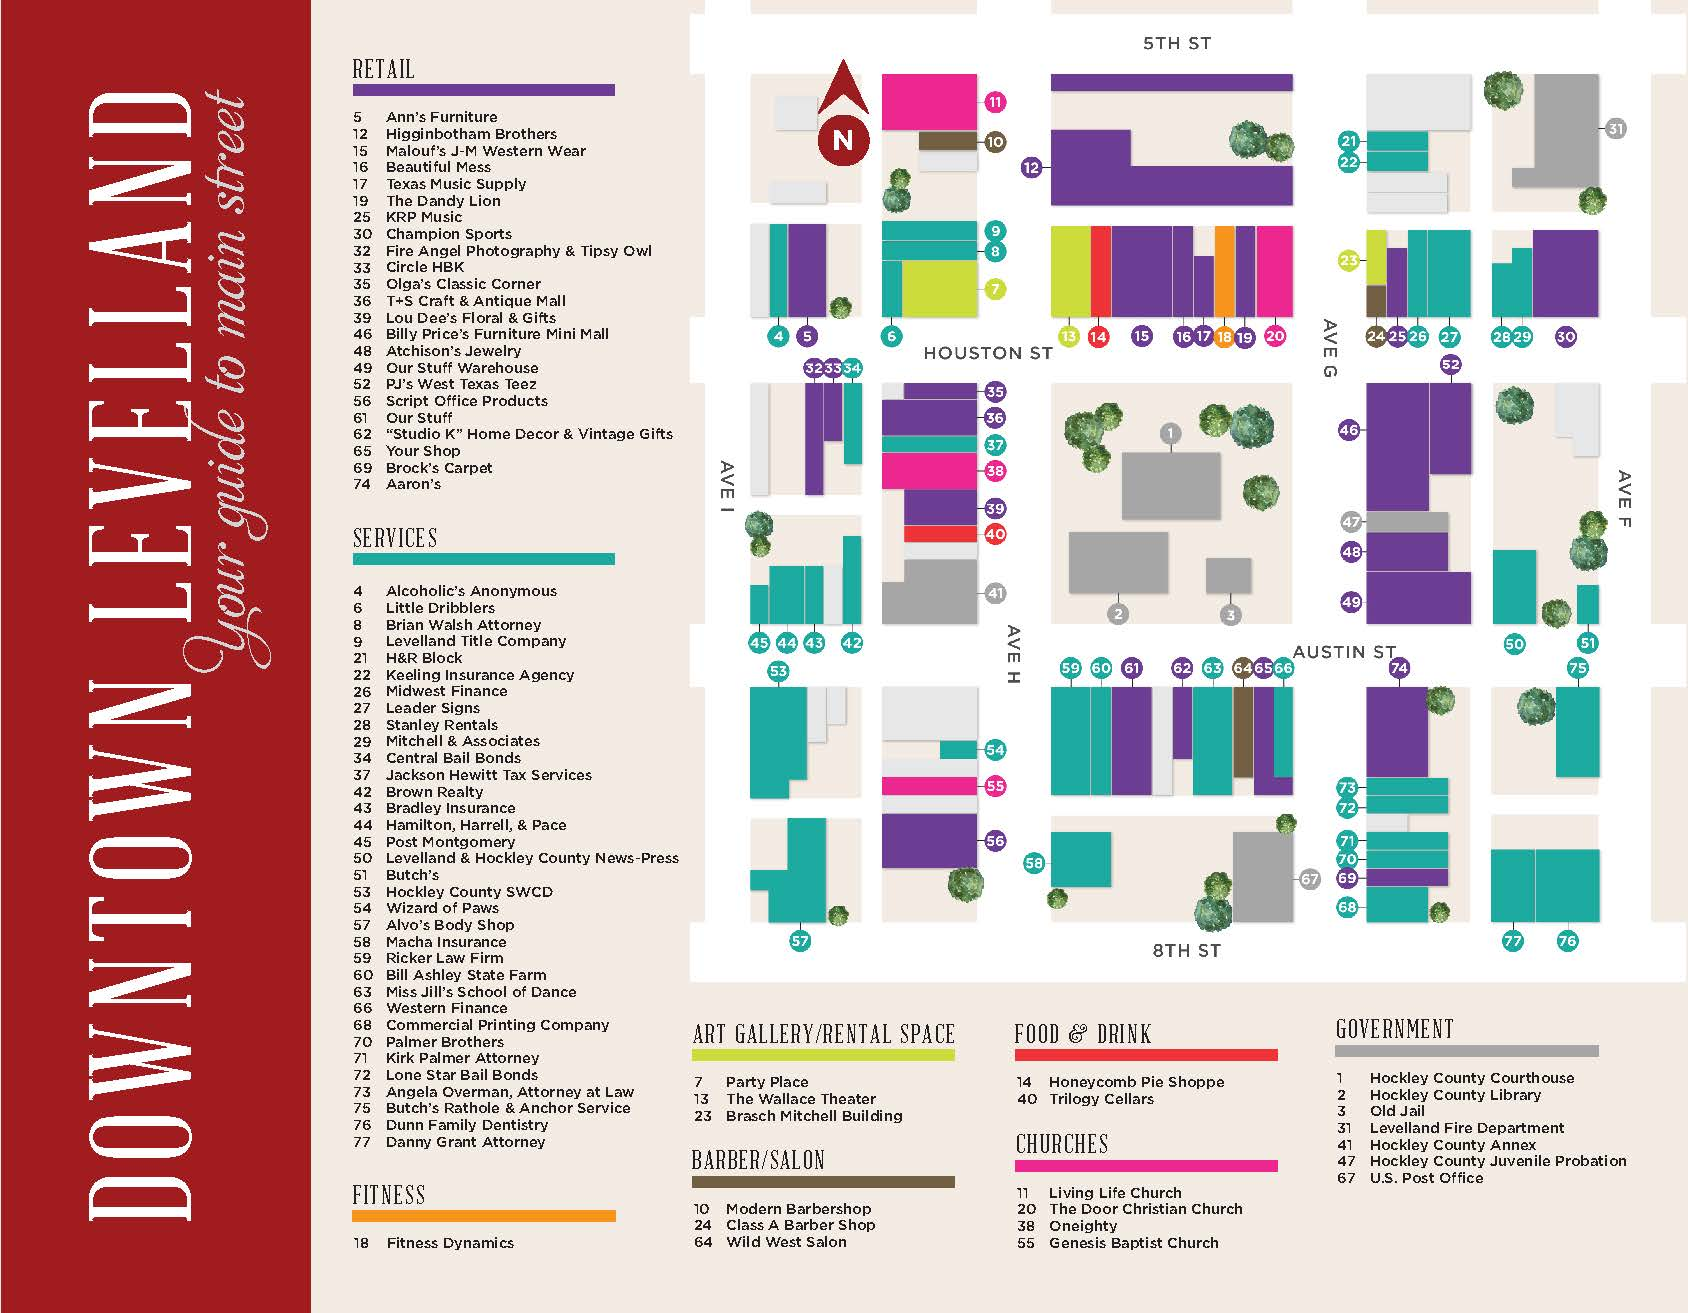 LMSP_ShoppingGuideBROCHURE_Page_2